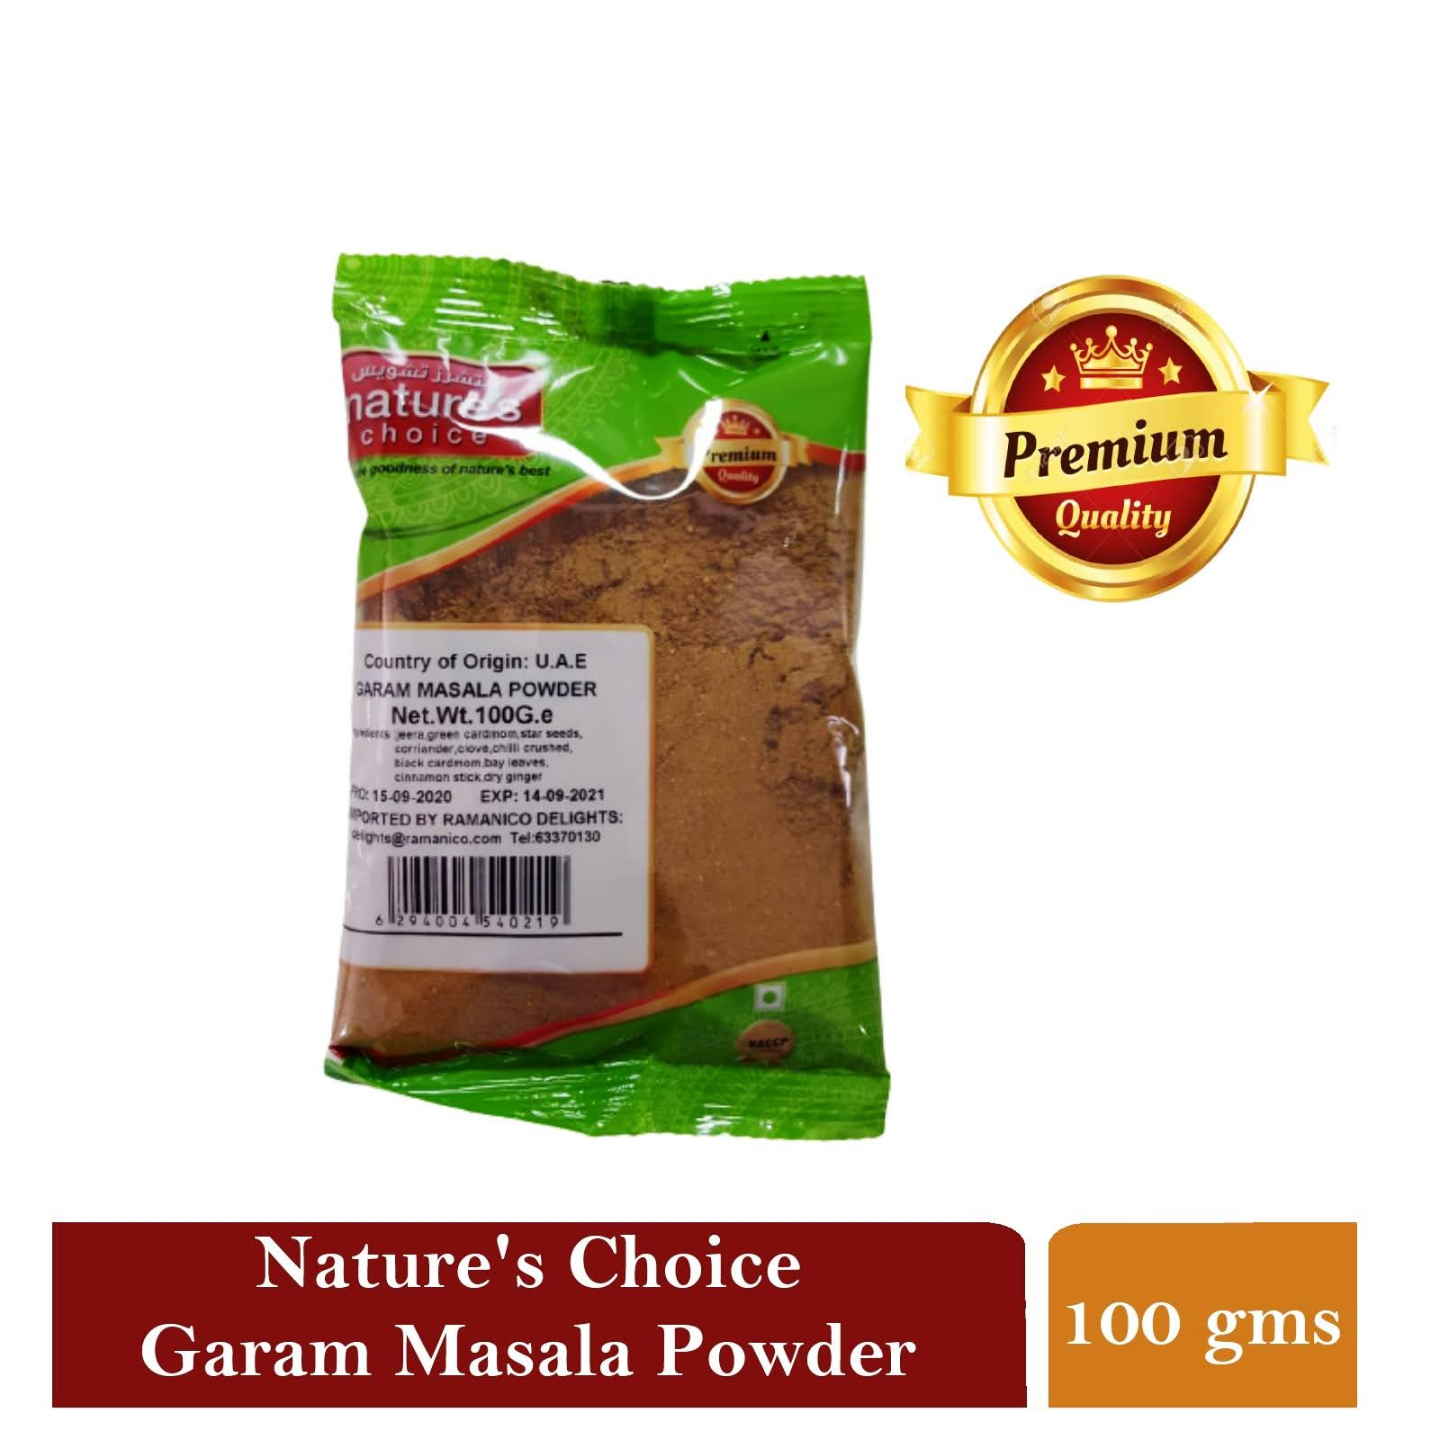 NATURES CHOICE PREMIUM QUALITY GARAM MASALA POWDER 100GM